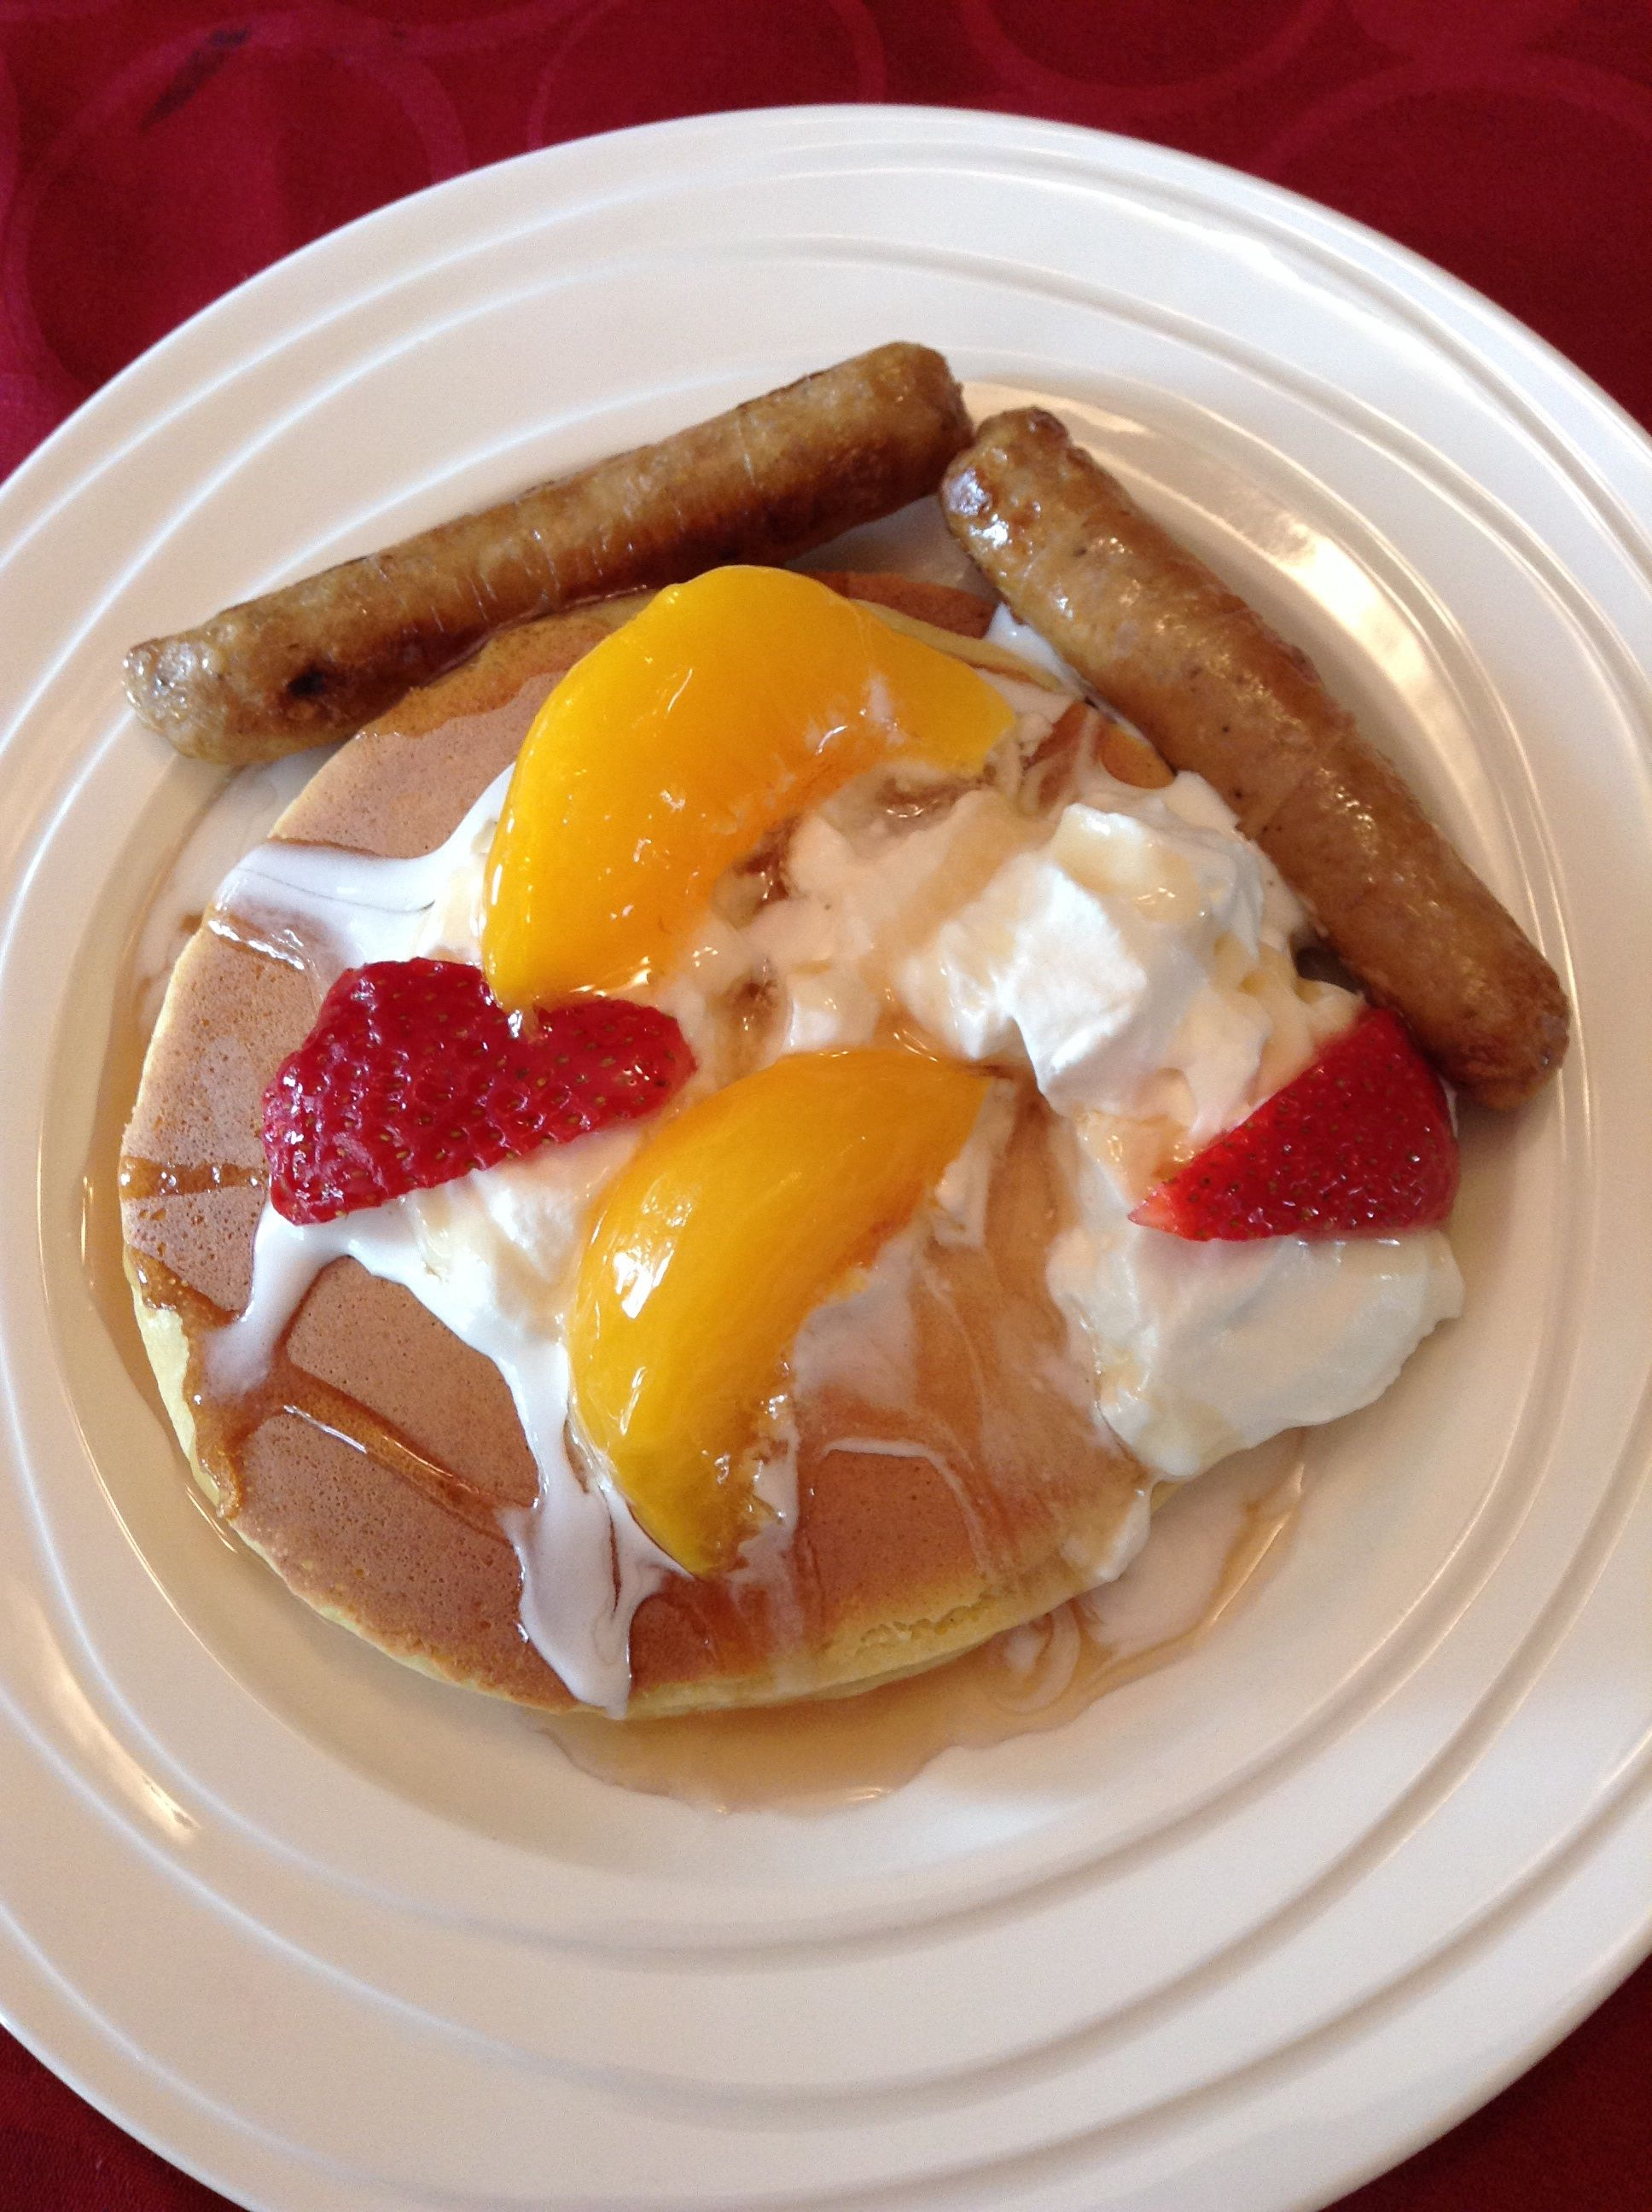 Yummy pancake,sausage,peach,straw berry,syrup and to top it all off with whip cream so good of a breakfast!